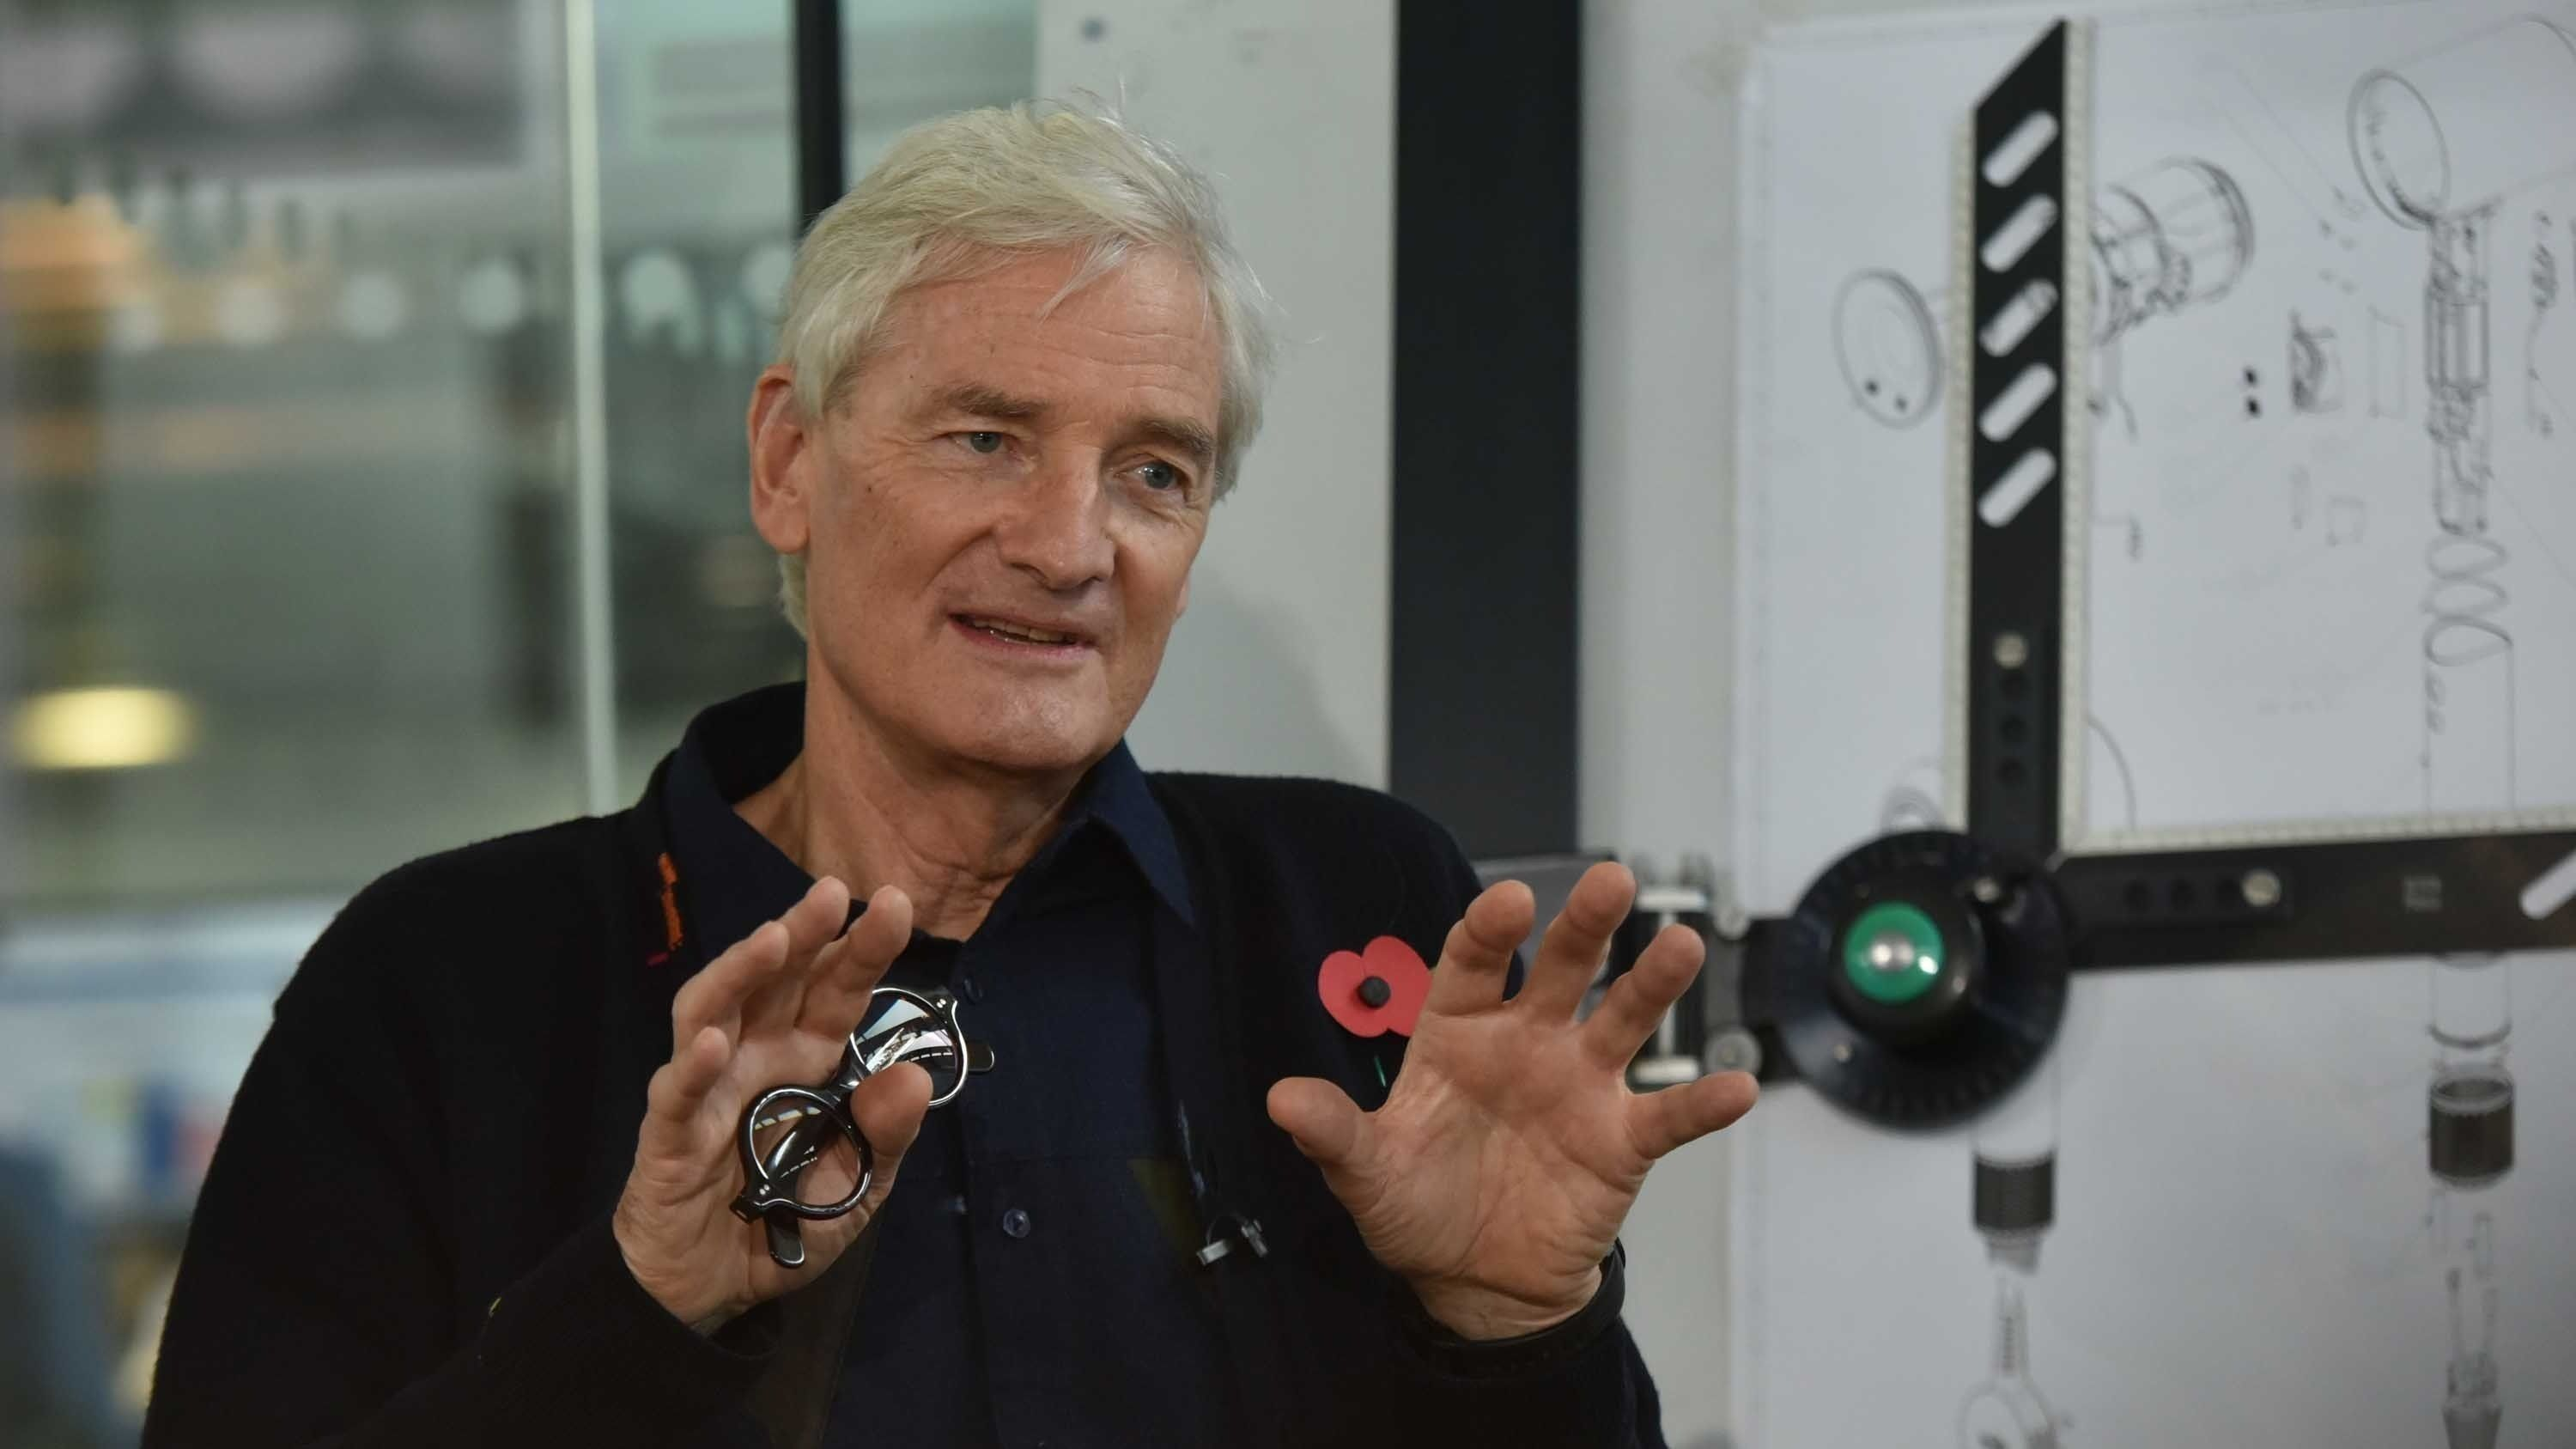 Dyson to move head office to Singapore